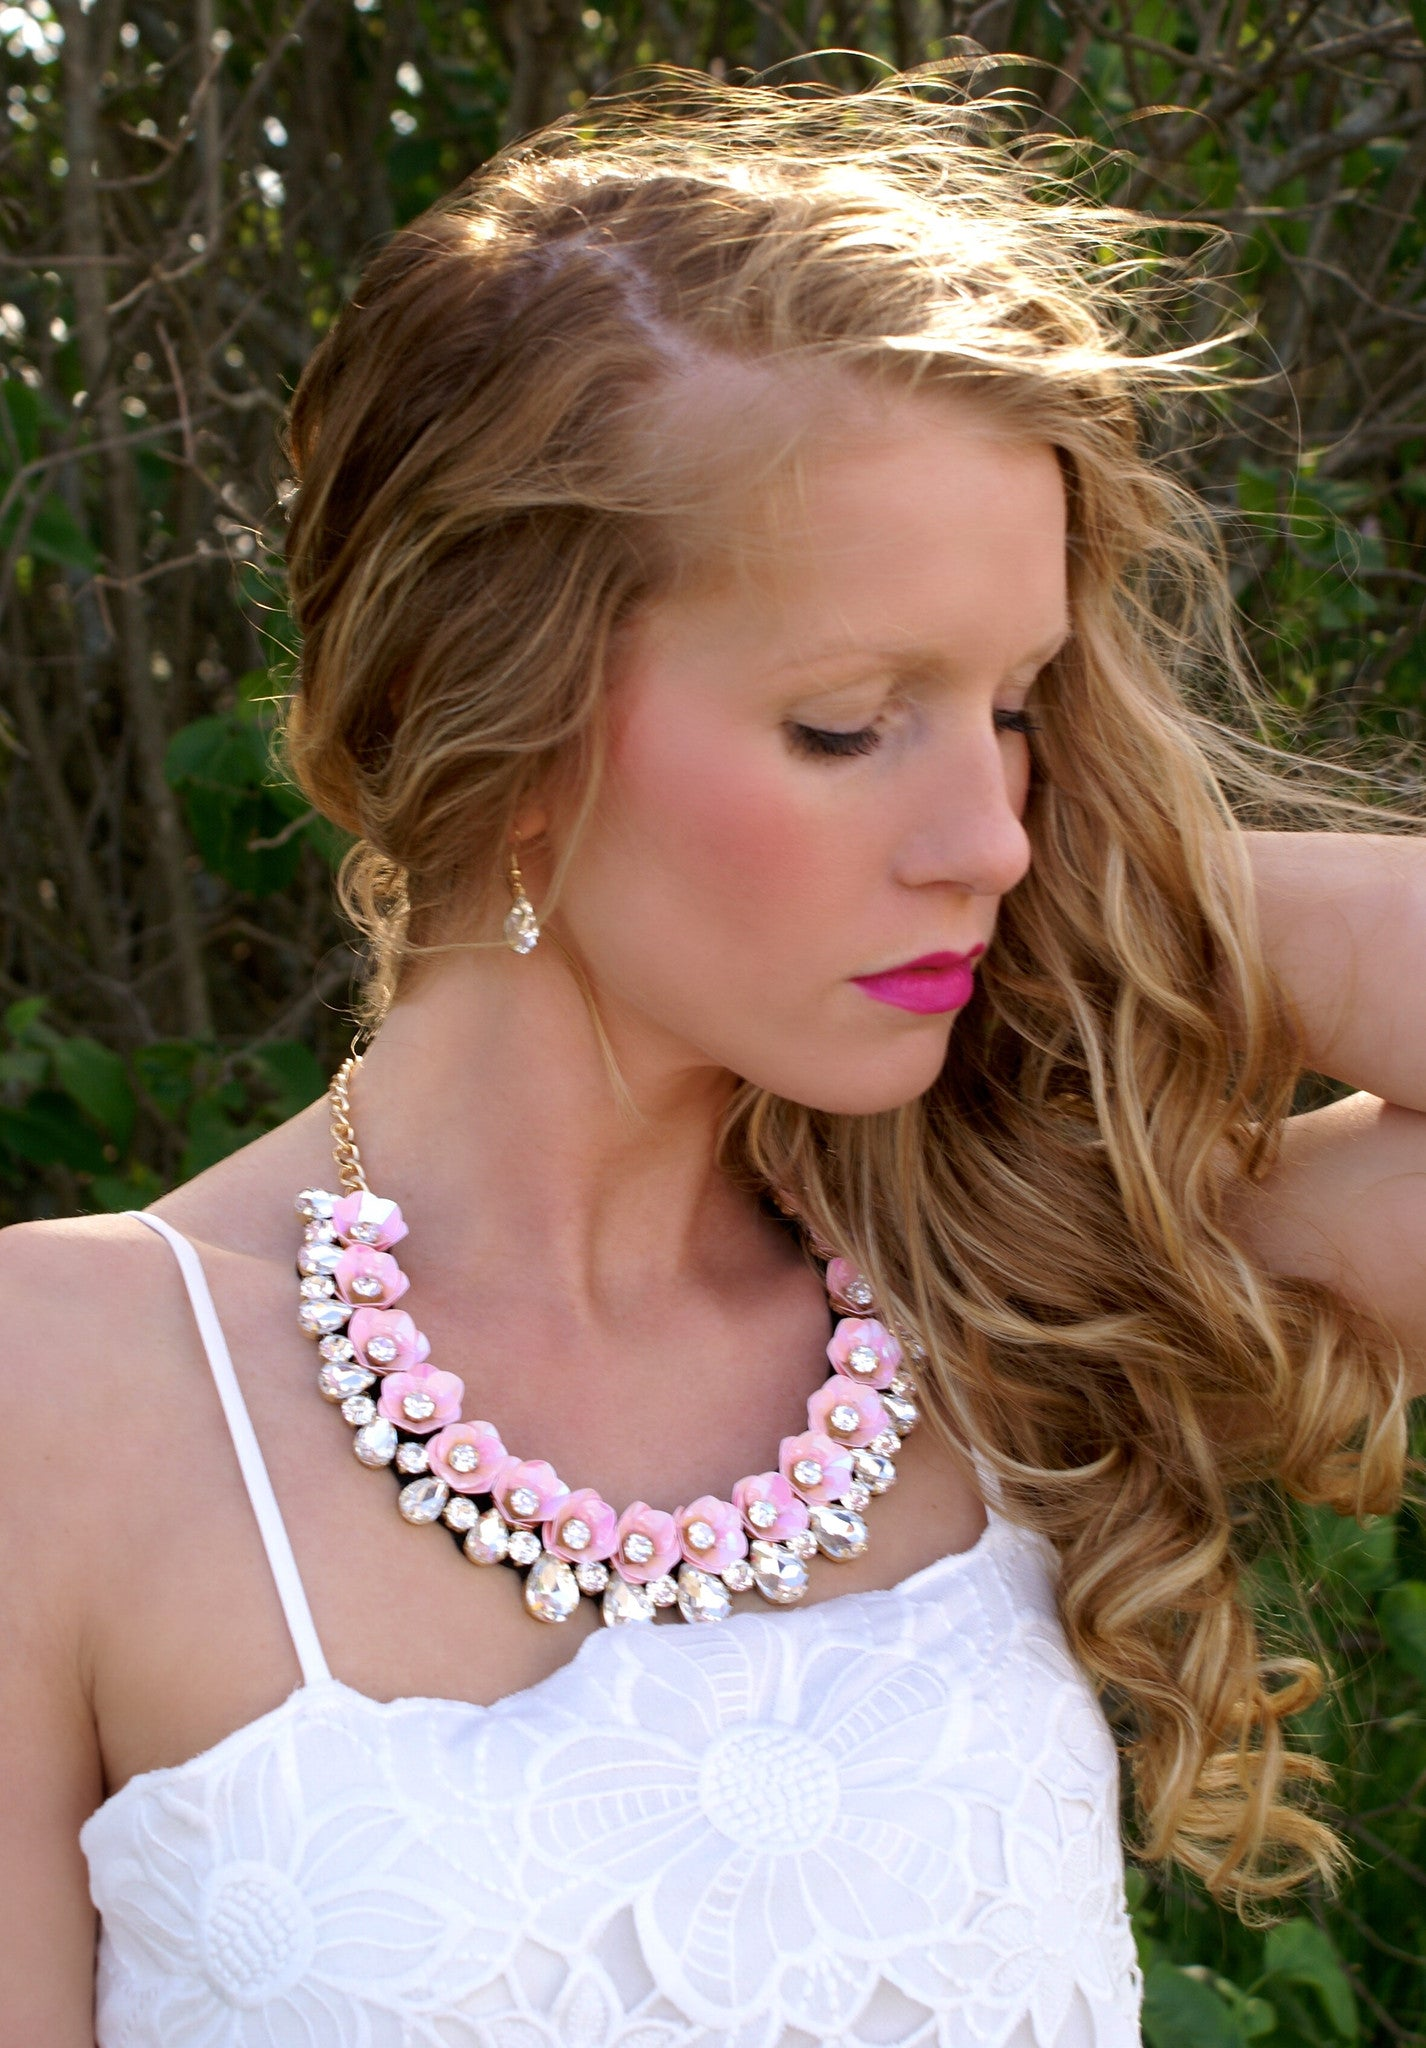 Light Of My Life Necklace & Earring Set: Pink